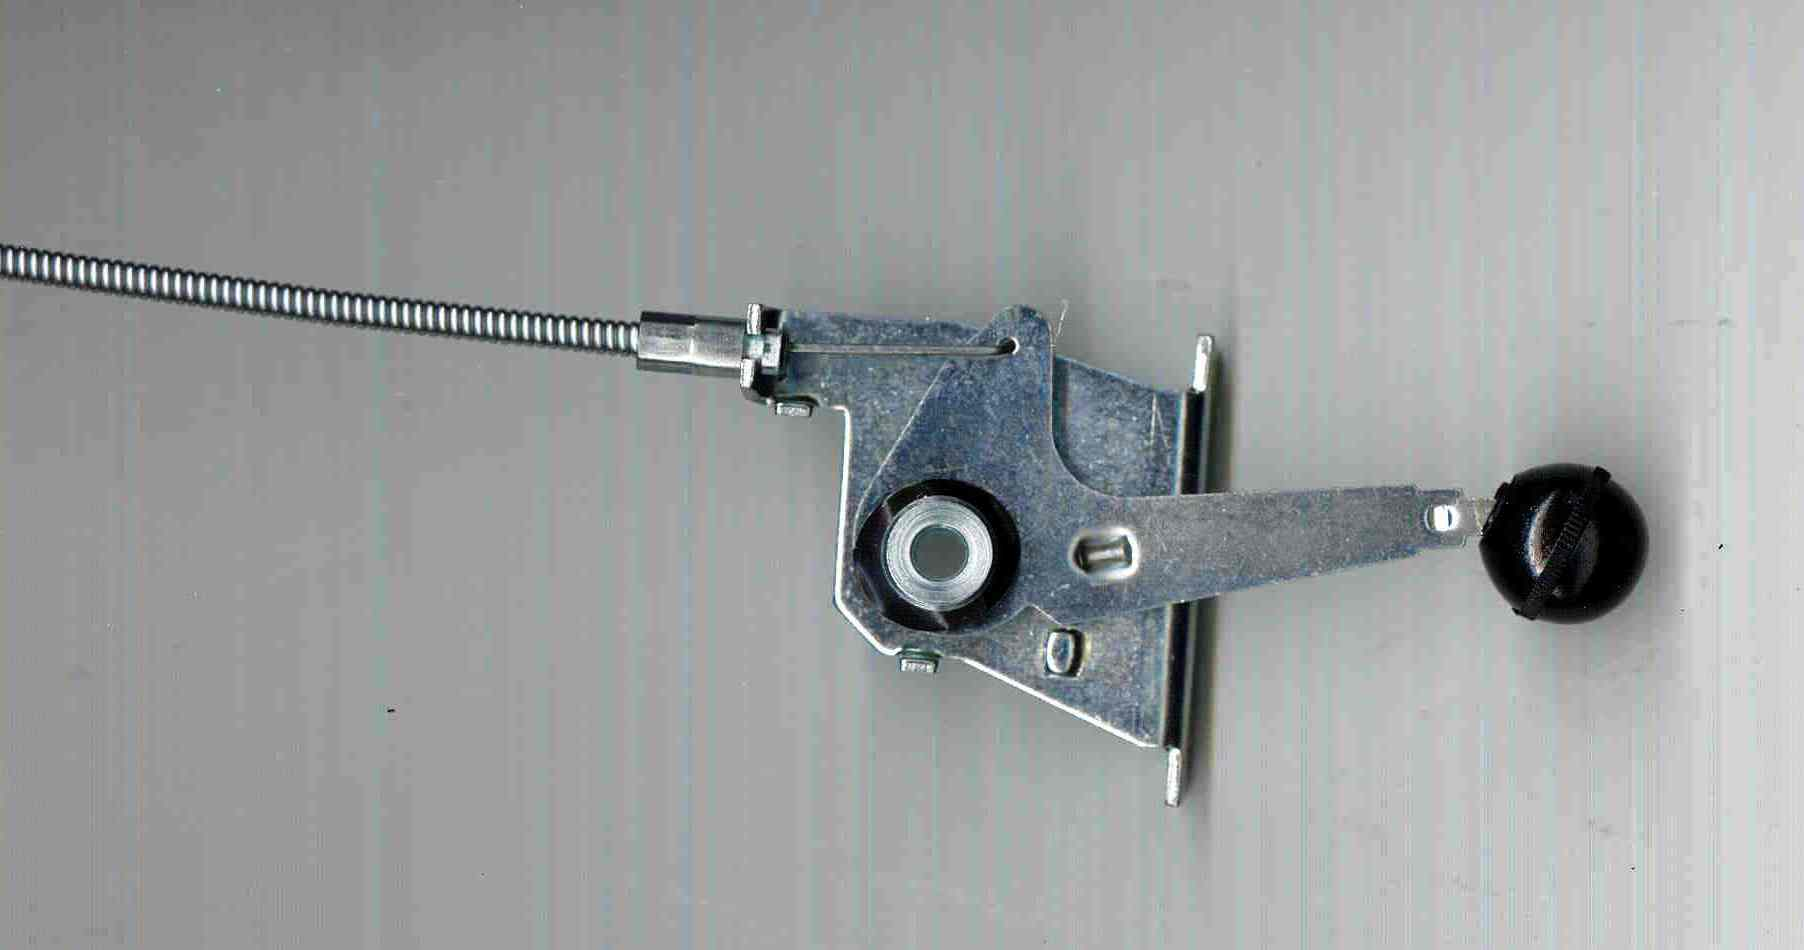 CABLE-THROTTLE-L Throttle Cable for conversion kits with mounting screws to the left of lever (Sunbelt # 229) Sunbelt Conversion